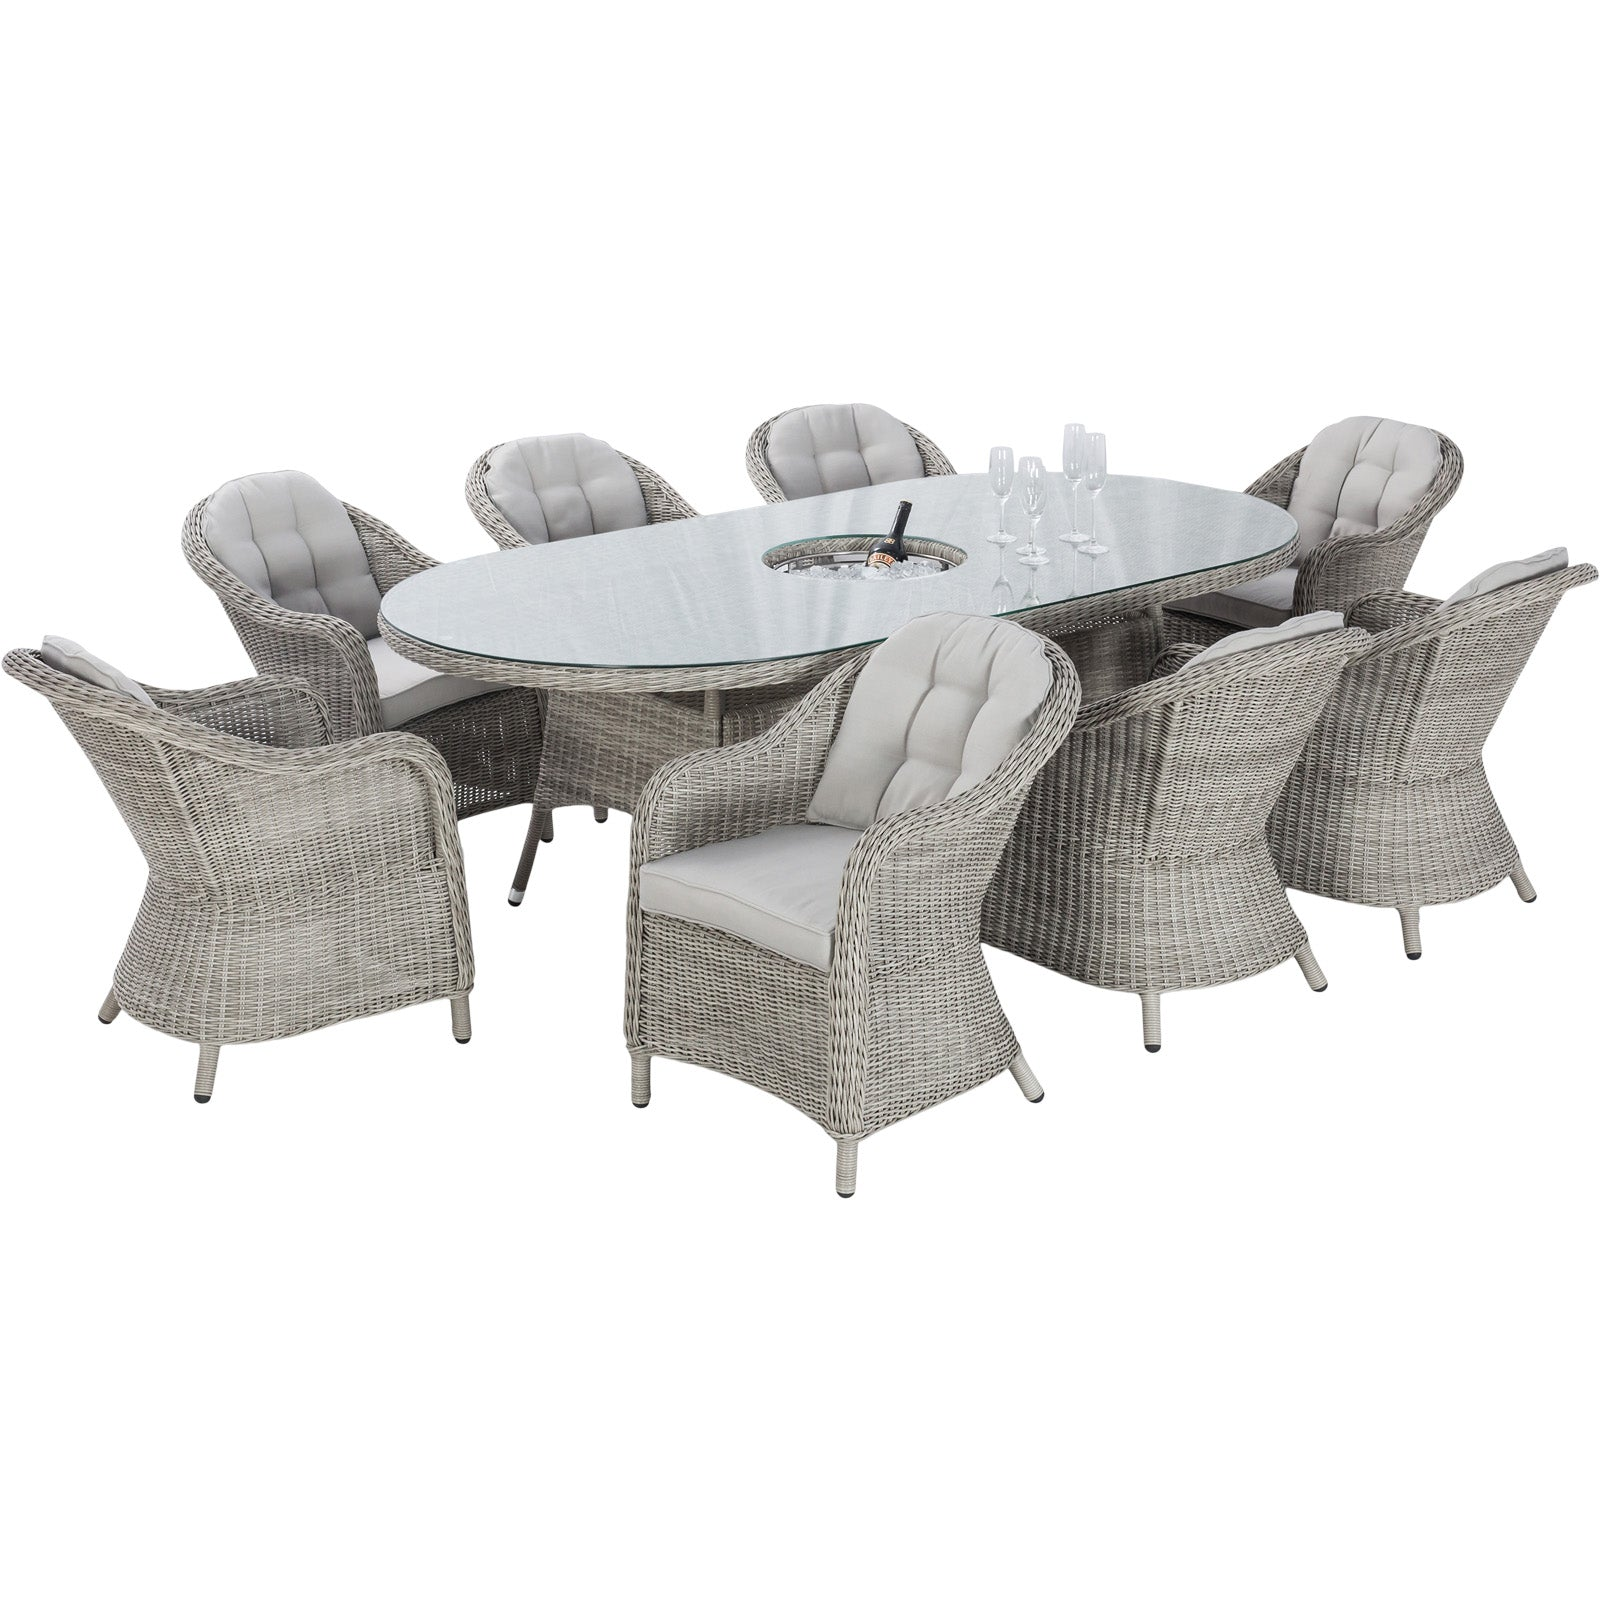 Oxford 8 Seat Oval Dining Set - Heritage Chairs